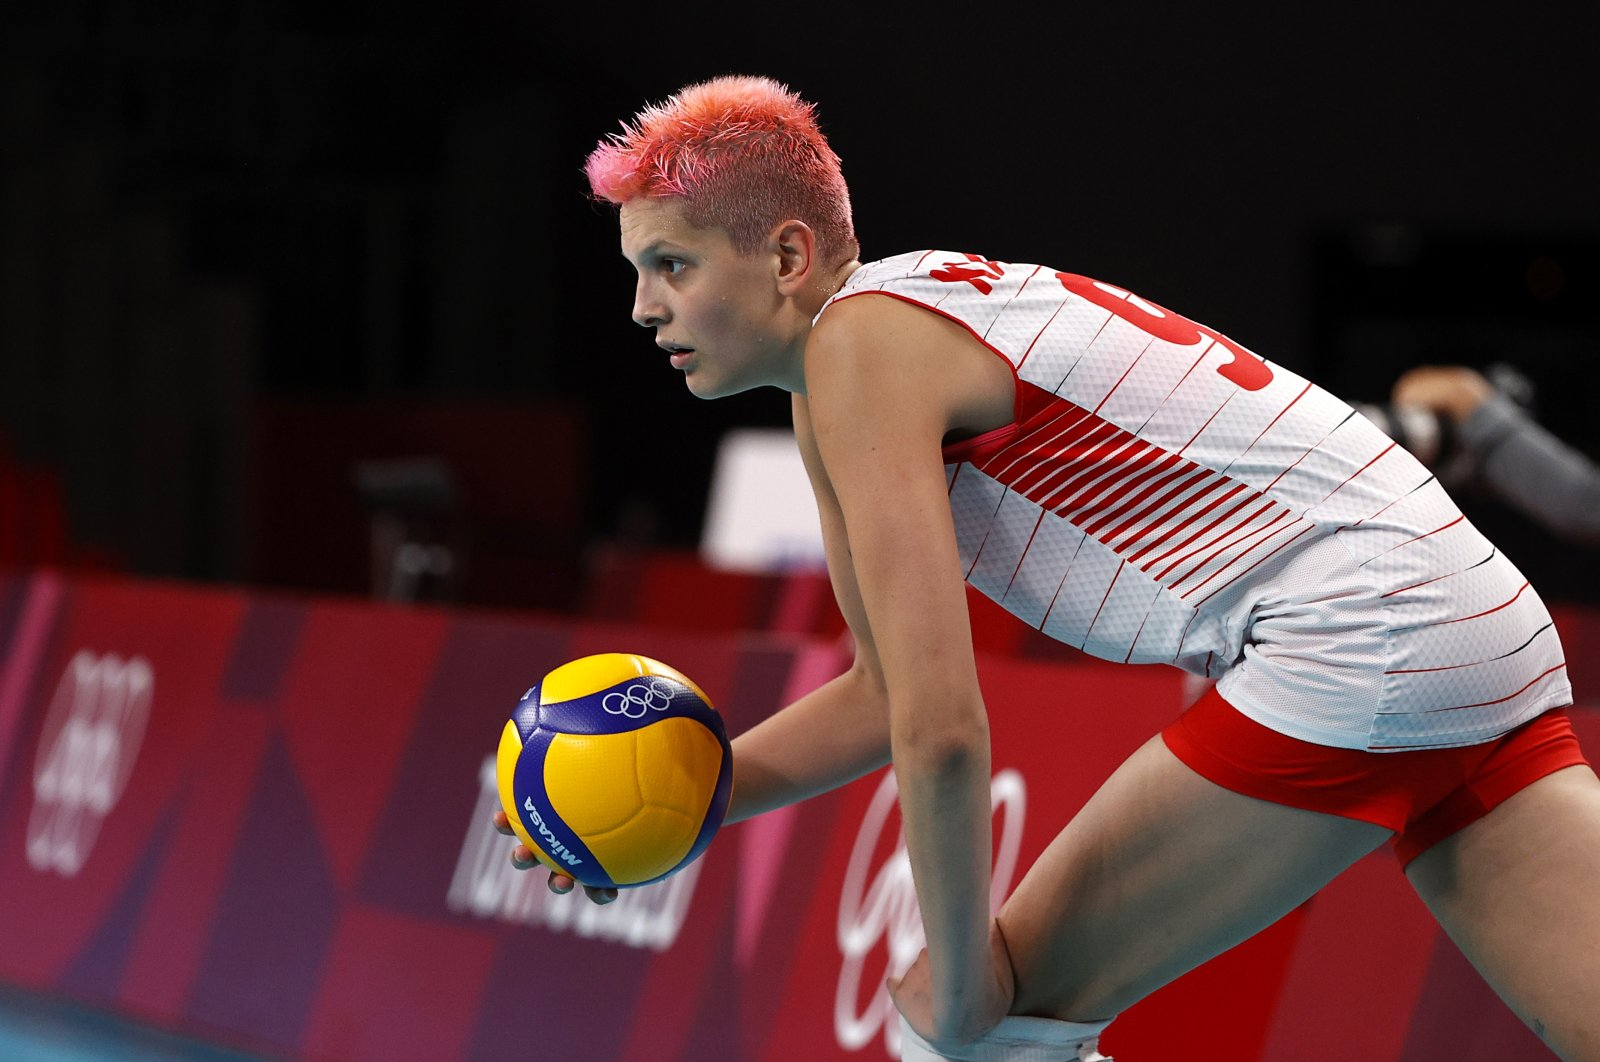 Turkey's Ebrar Karakurt in action during the women's preliminary round pool B volleyball match against USA during the Tokyo 2020 Olympic Games at Ariake Arena, in Tokyo, Japan, July 30, 2021. (Reuters Photo)